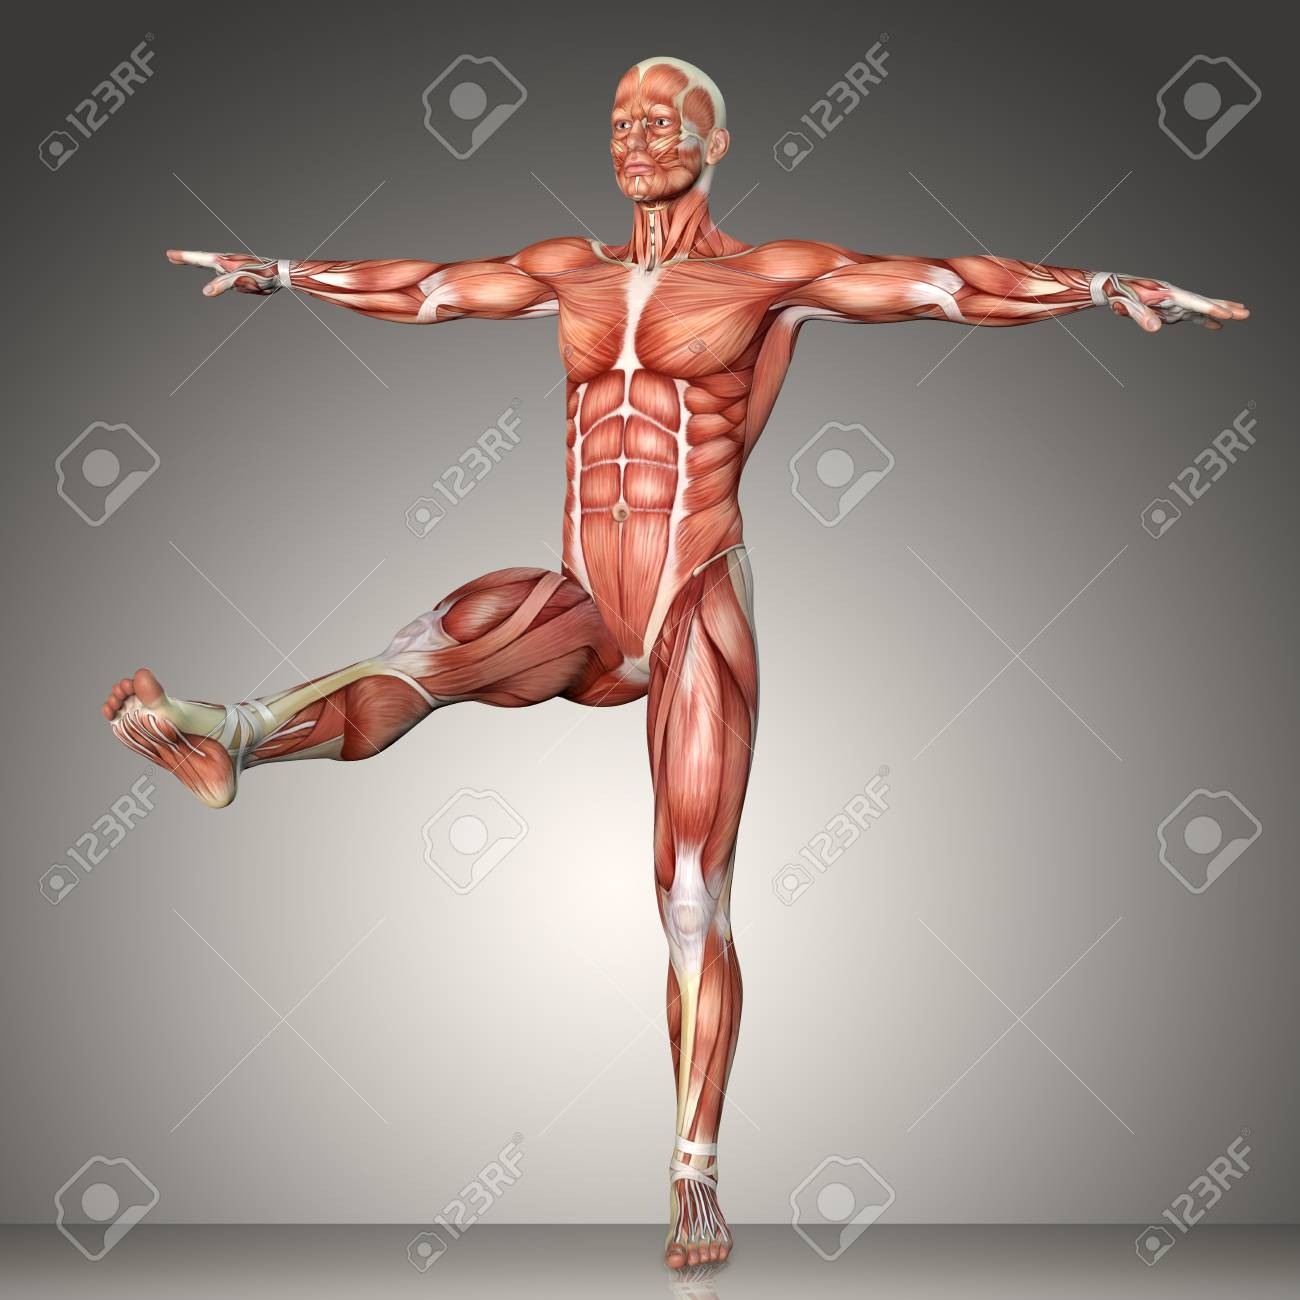 3d Rendering Of A Male Anatomy Figure In Exercise Pose Stock Photo